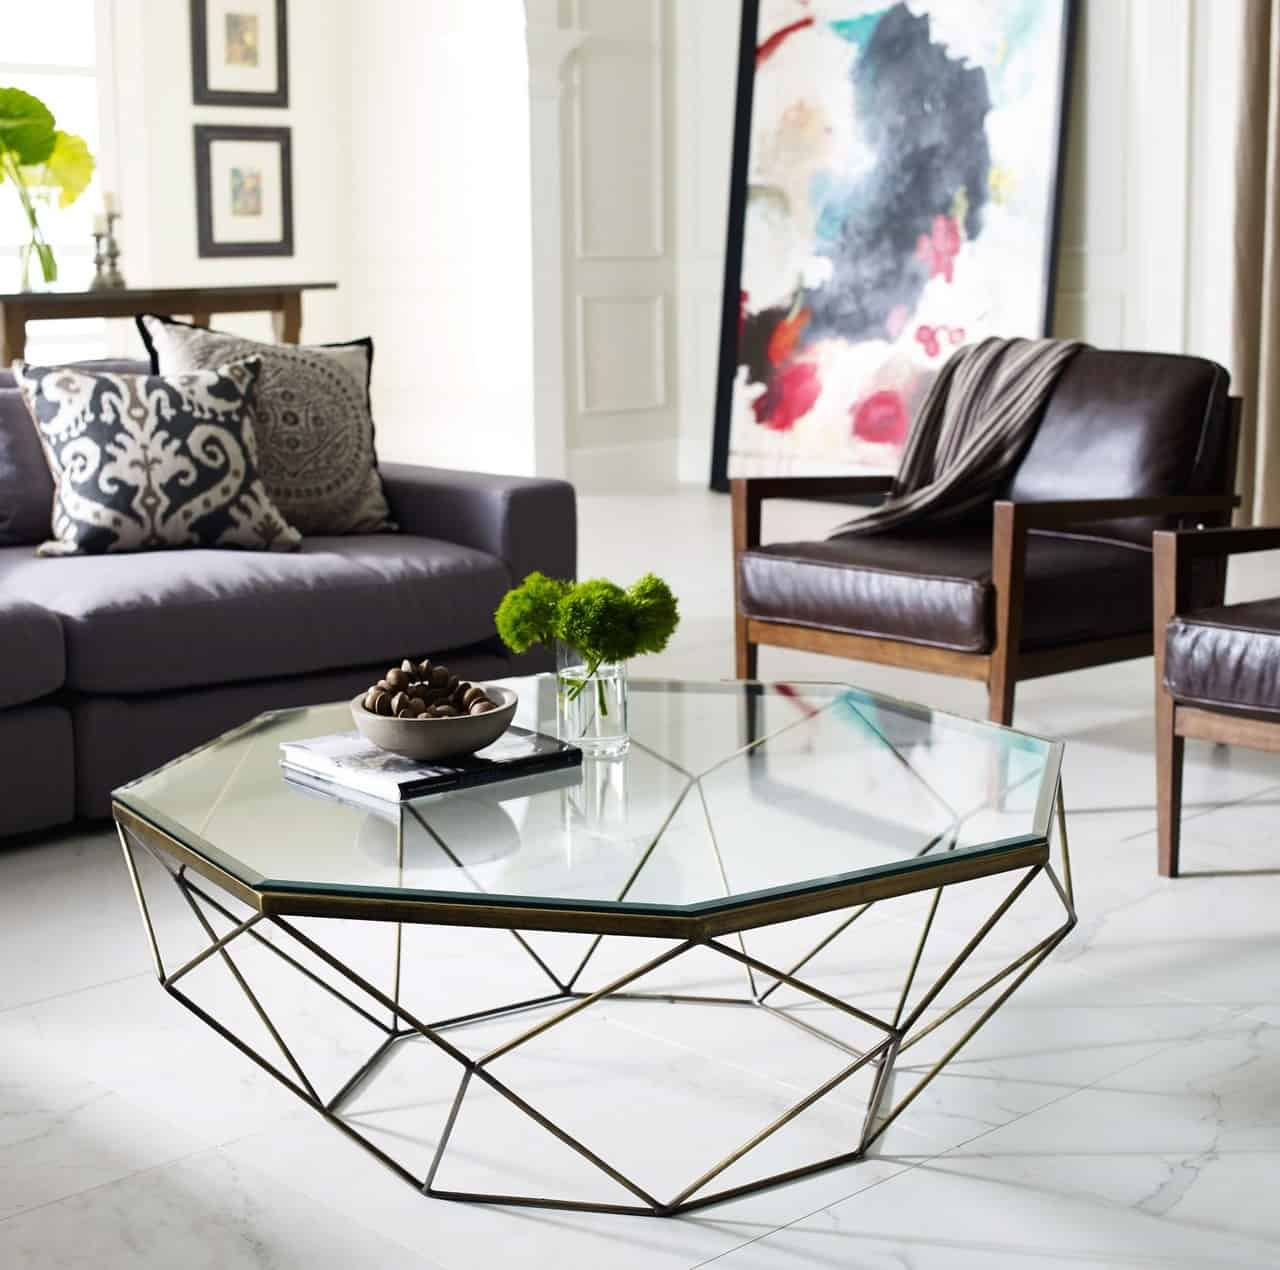 modern design living room 2018 sofa designs coffee table trends for